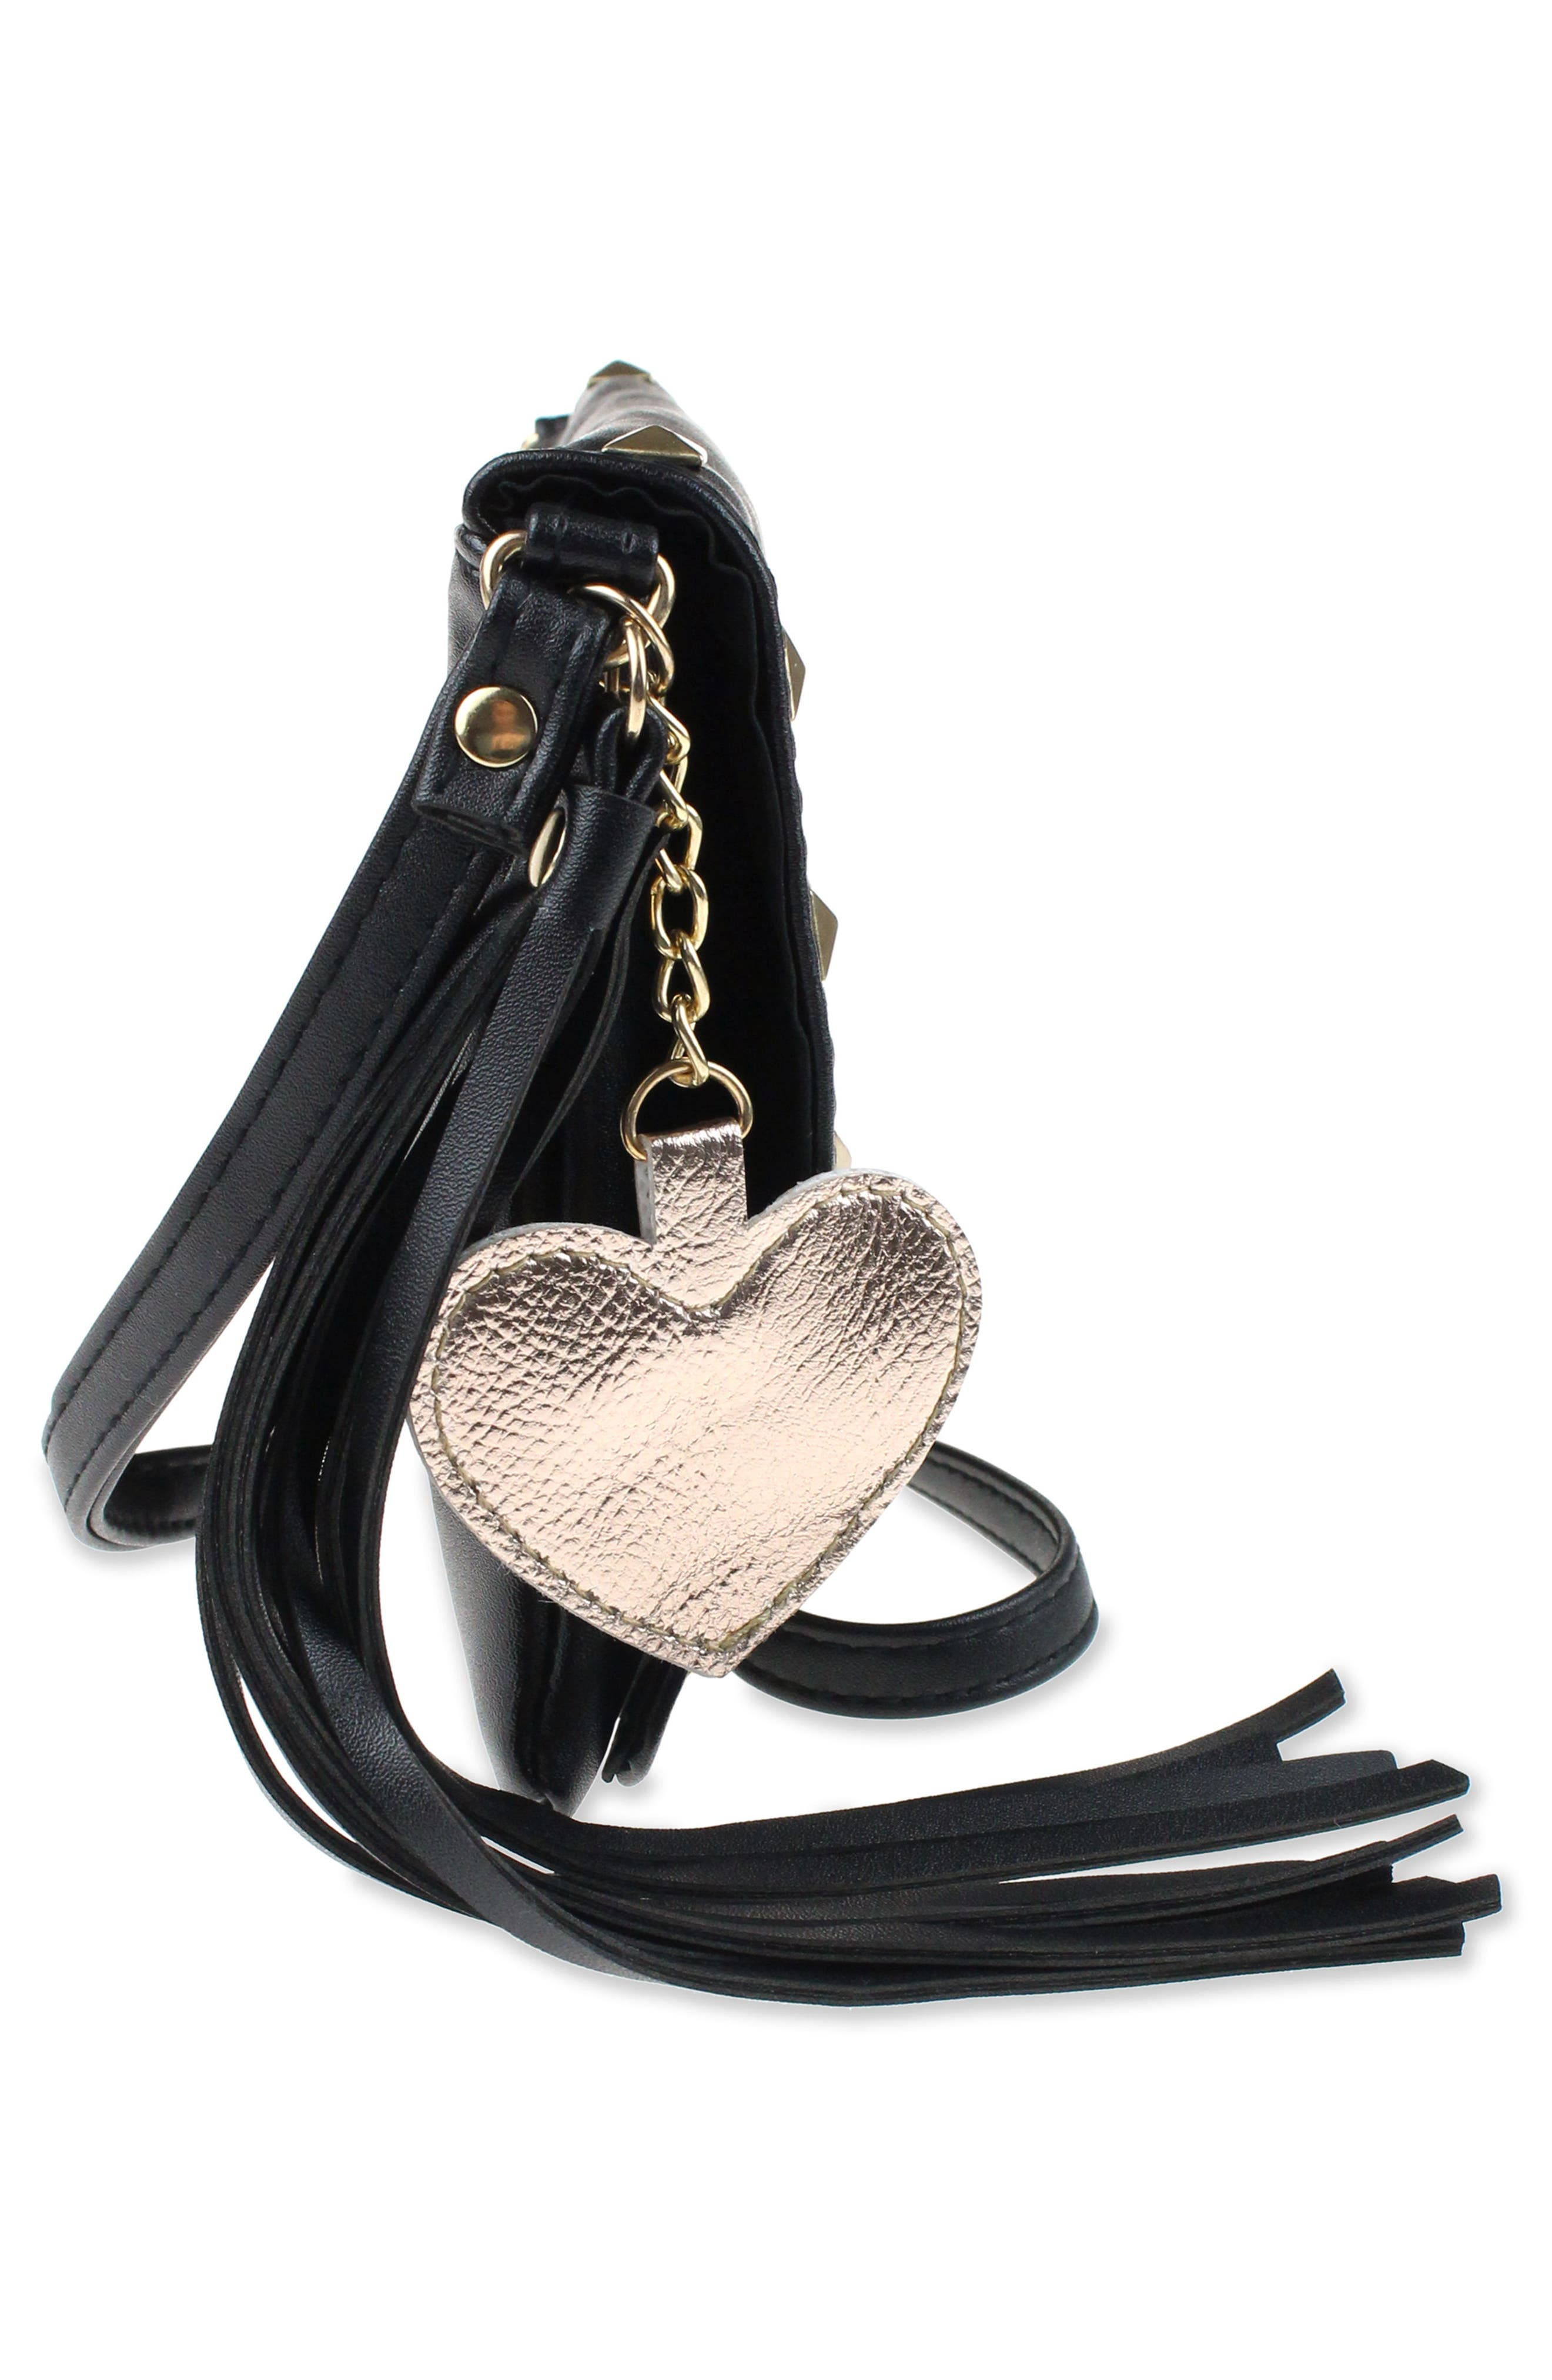 Studded Faux Leather Crossbody Bag,                             Alternate thumbnail 4, color,                             002